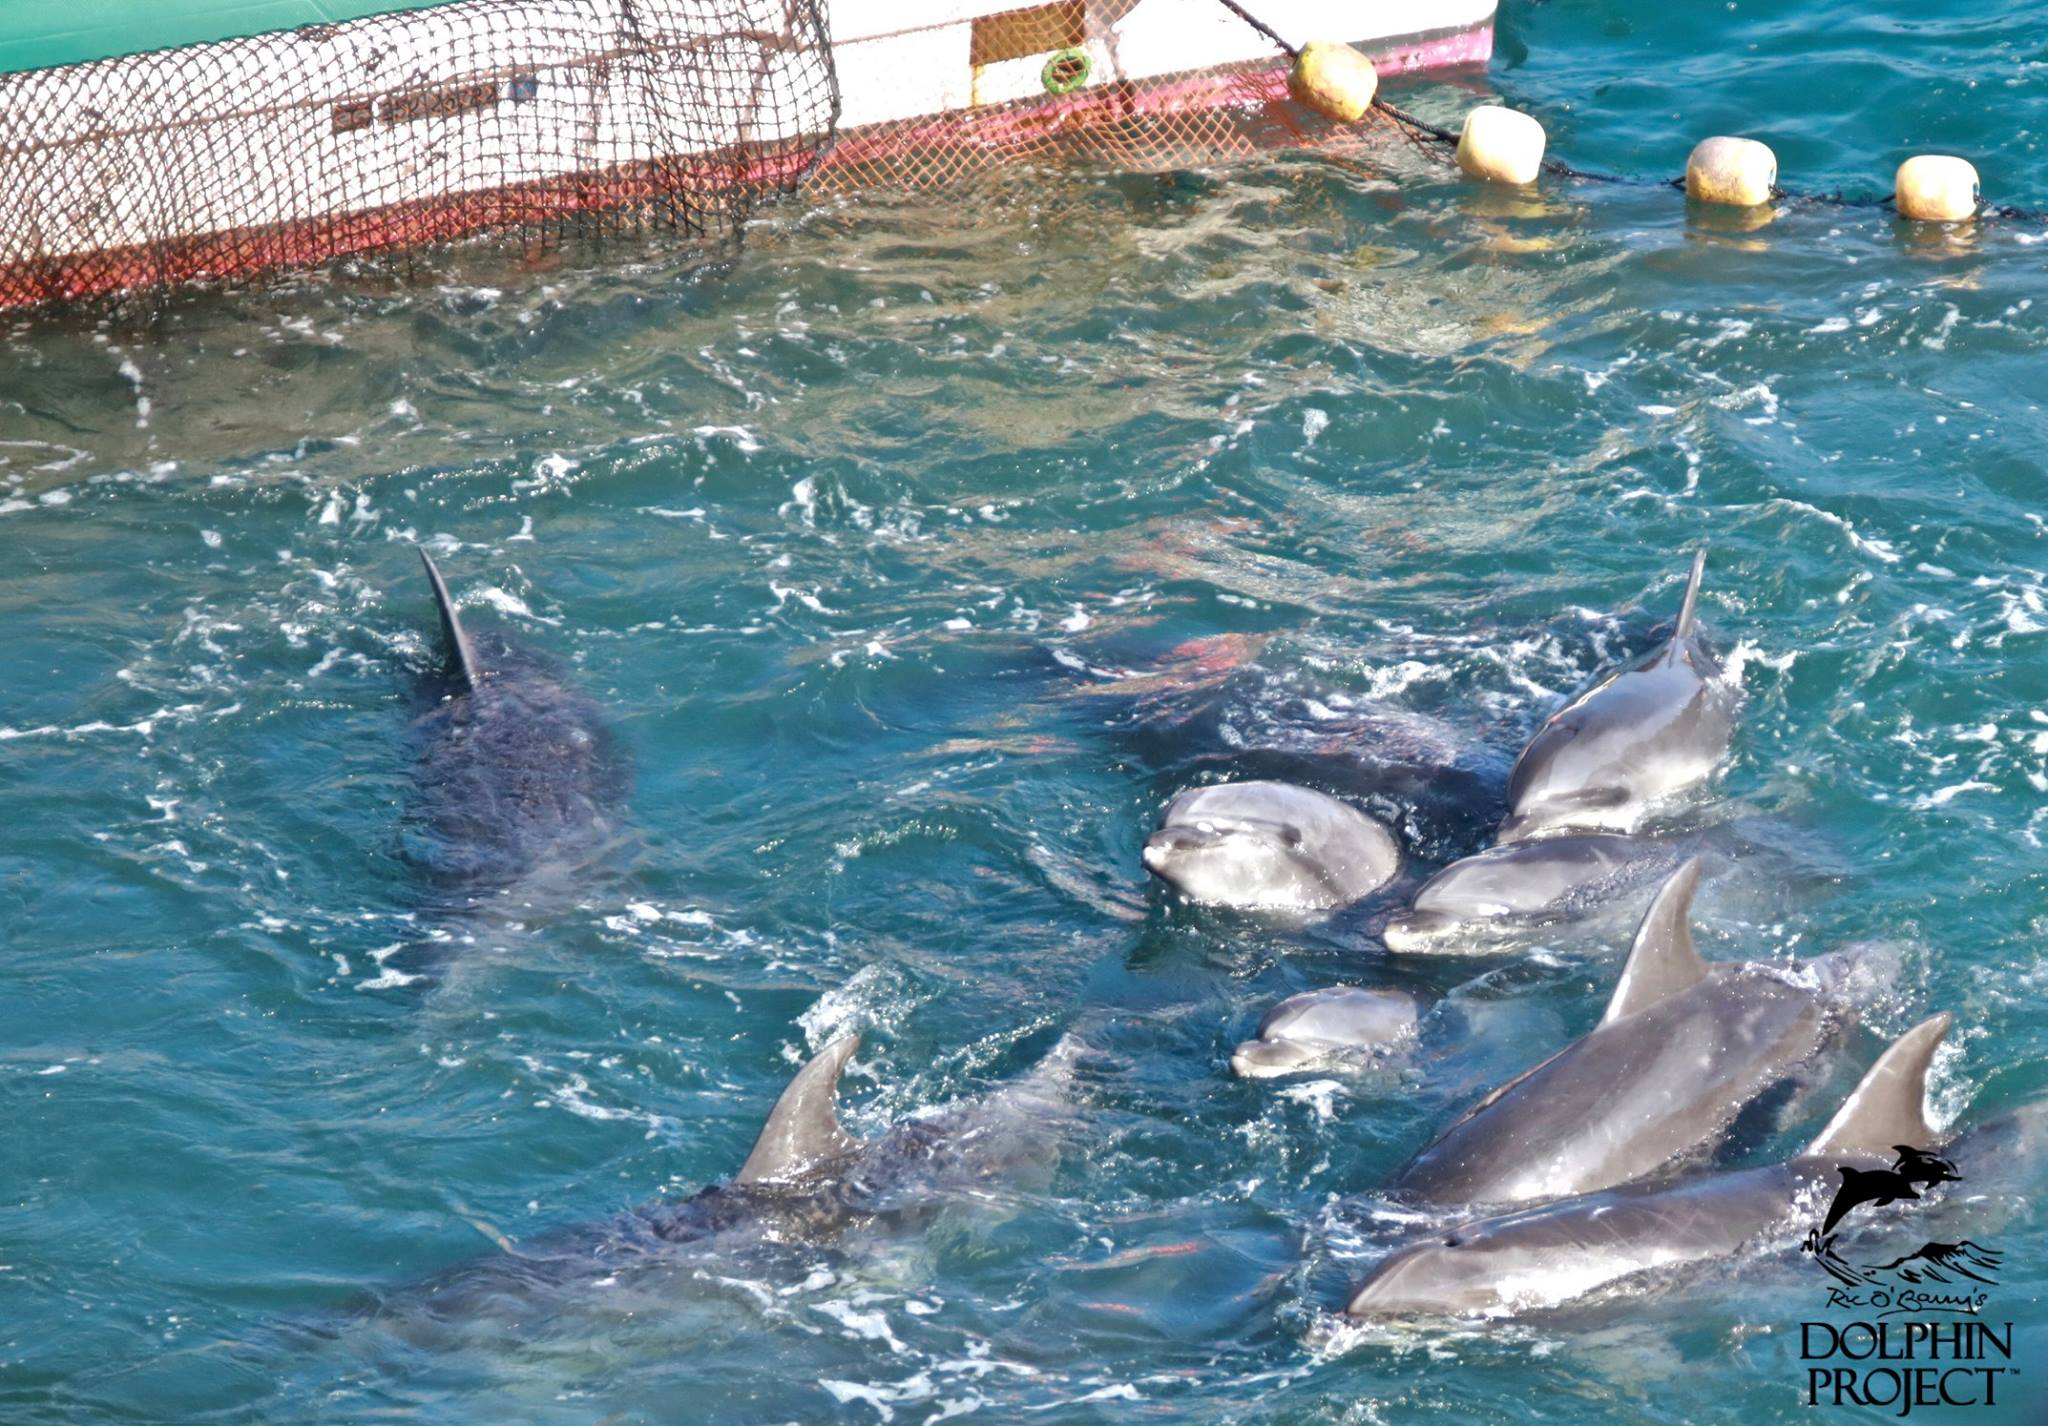 Taiji/Japan 20.01.2017 - Foto: Ric O'Barry's Dolphin Project